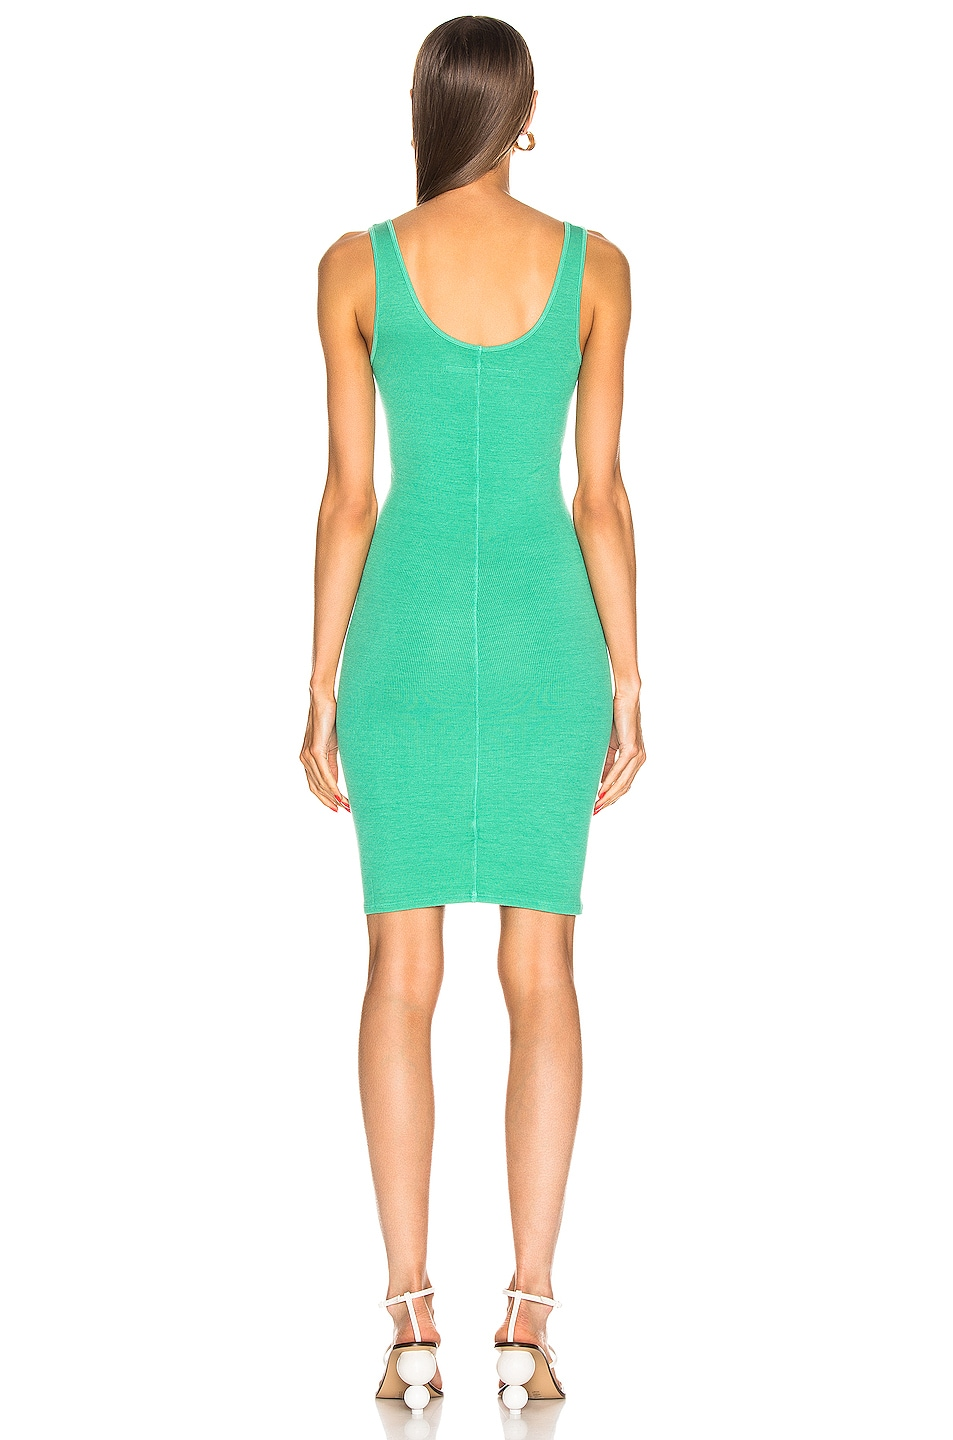 Image 3 of Enza Costa for FWRD Rib Tank Dress in Jade Green